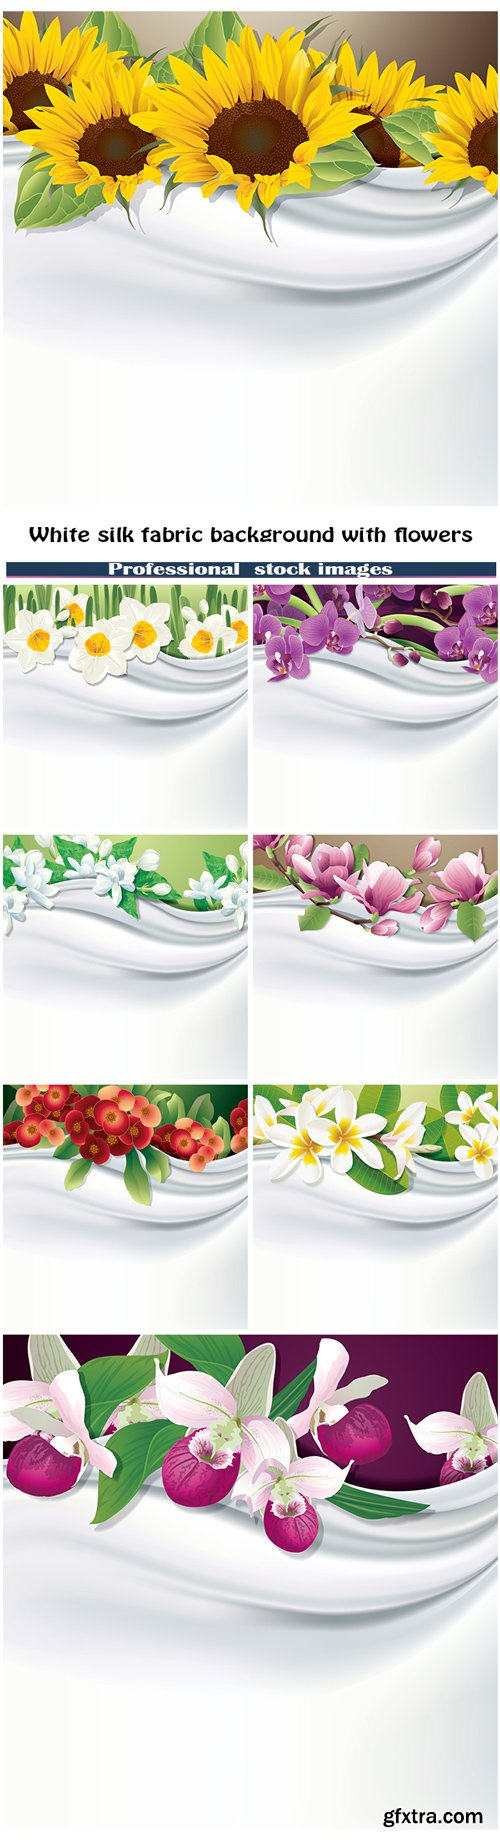 White silk fabric background with flowers